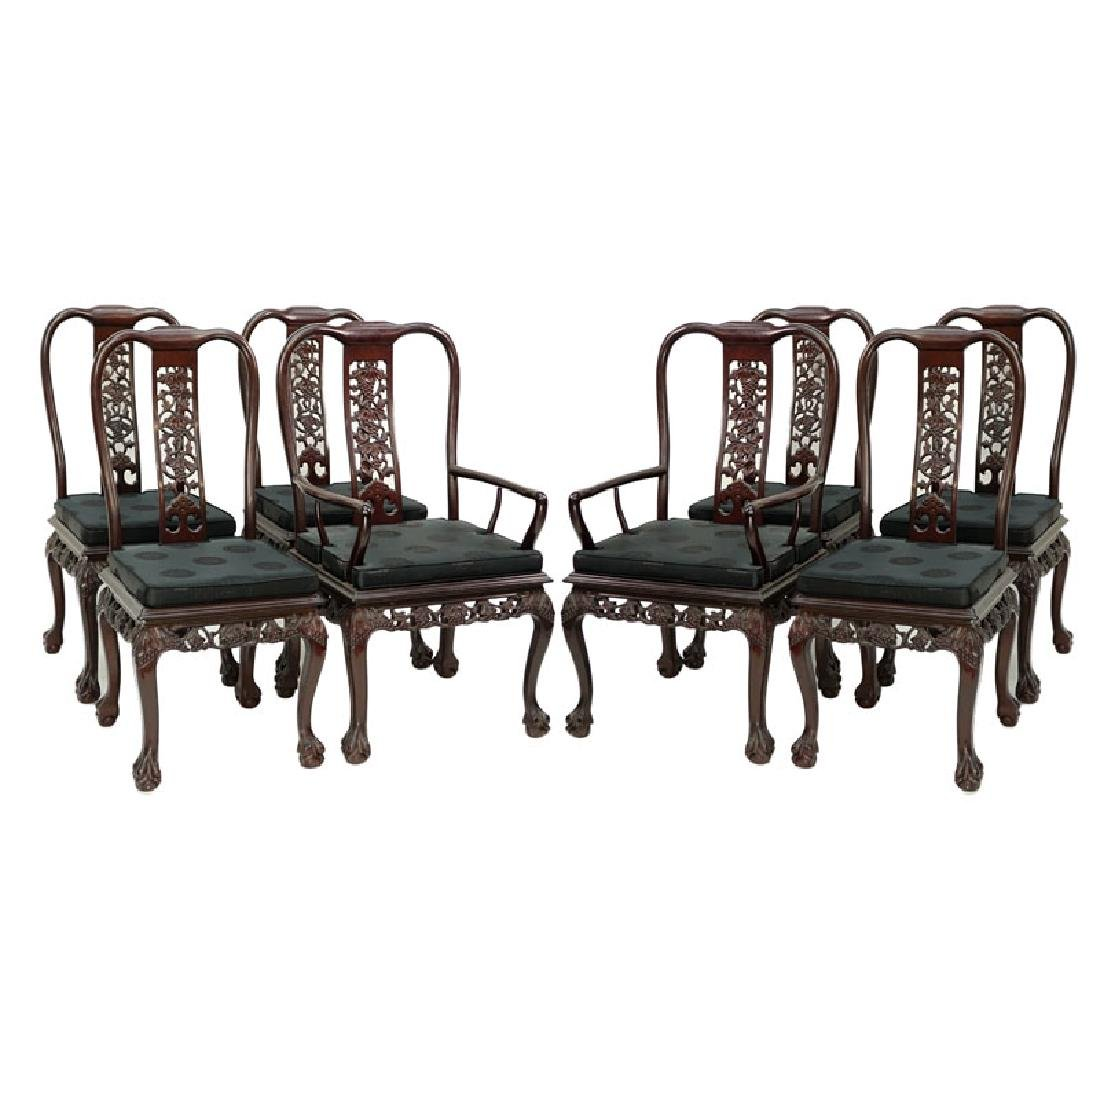 Set of Eight (8) Modern Chinese Carved Hardwood Chairs